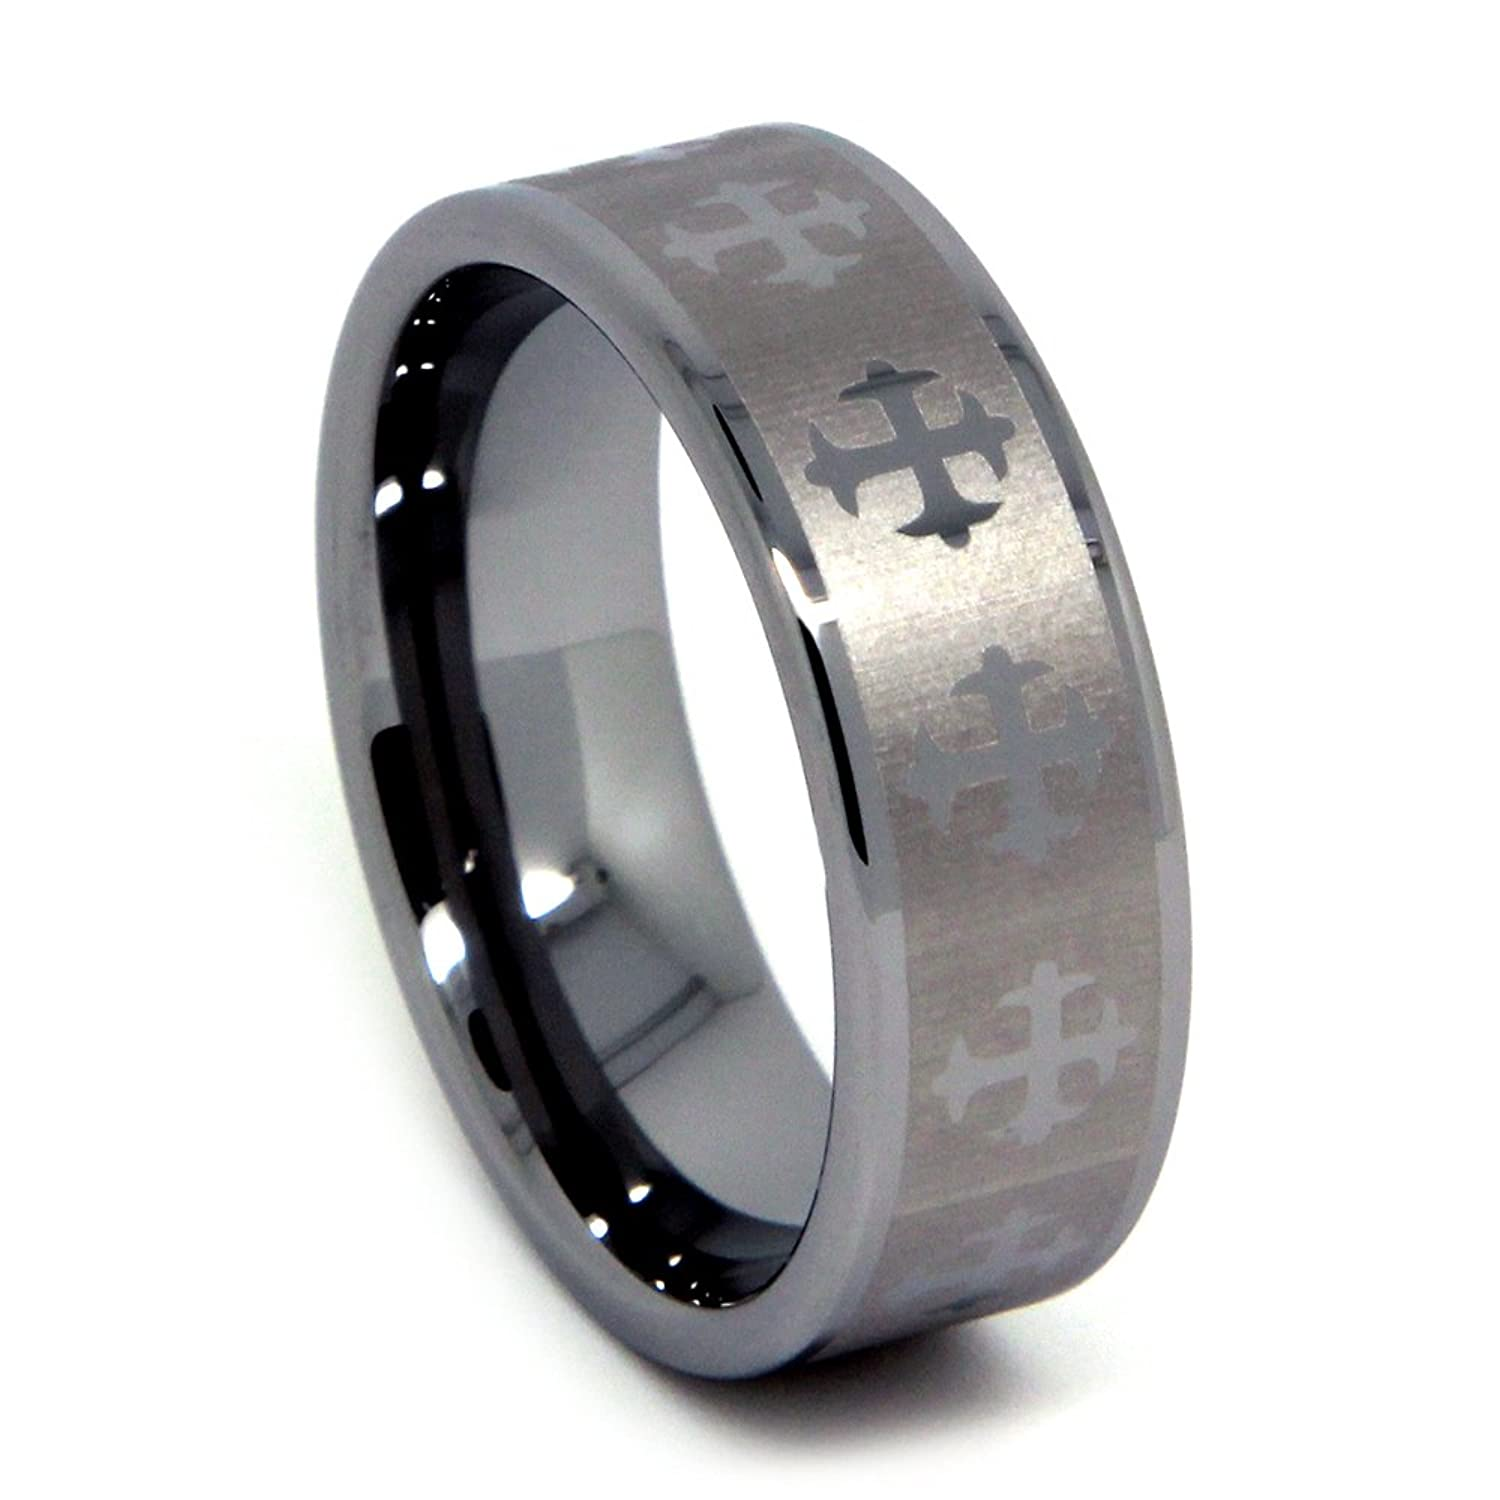 Tungsten Wedding Band Carbide Ring For Men With Gothic Crosses Flat Top 8mmamazon: Wedding Rings Tungsten Crosses At Websimilar.org